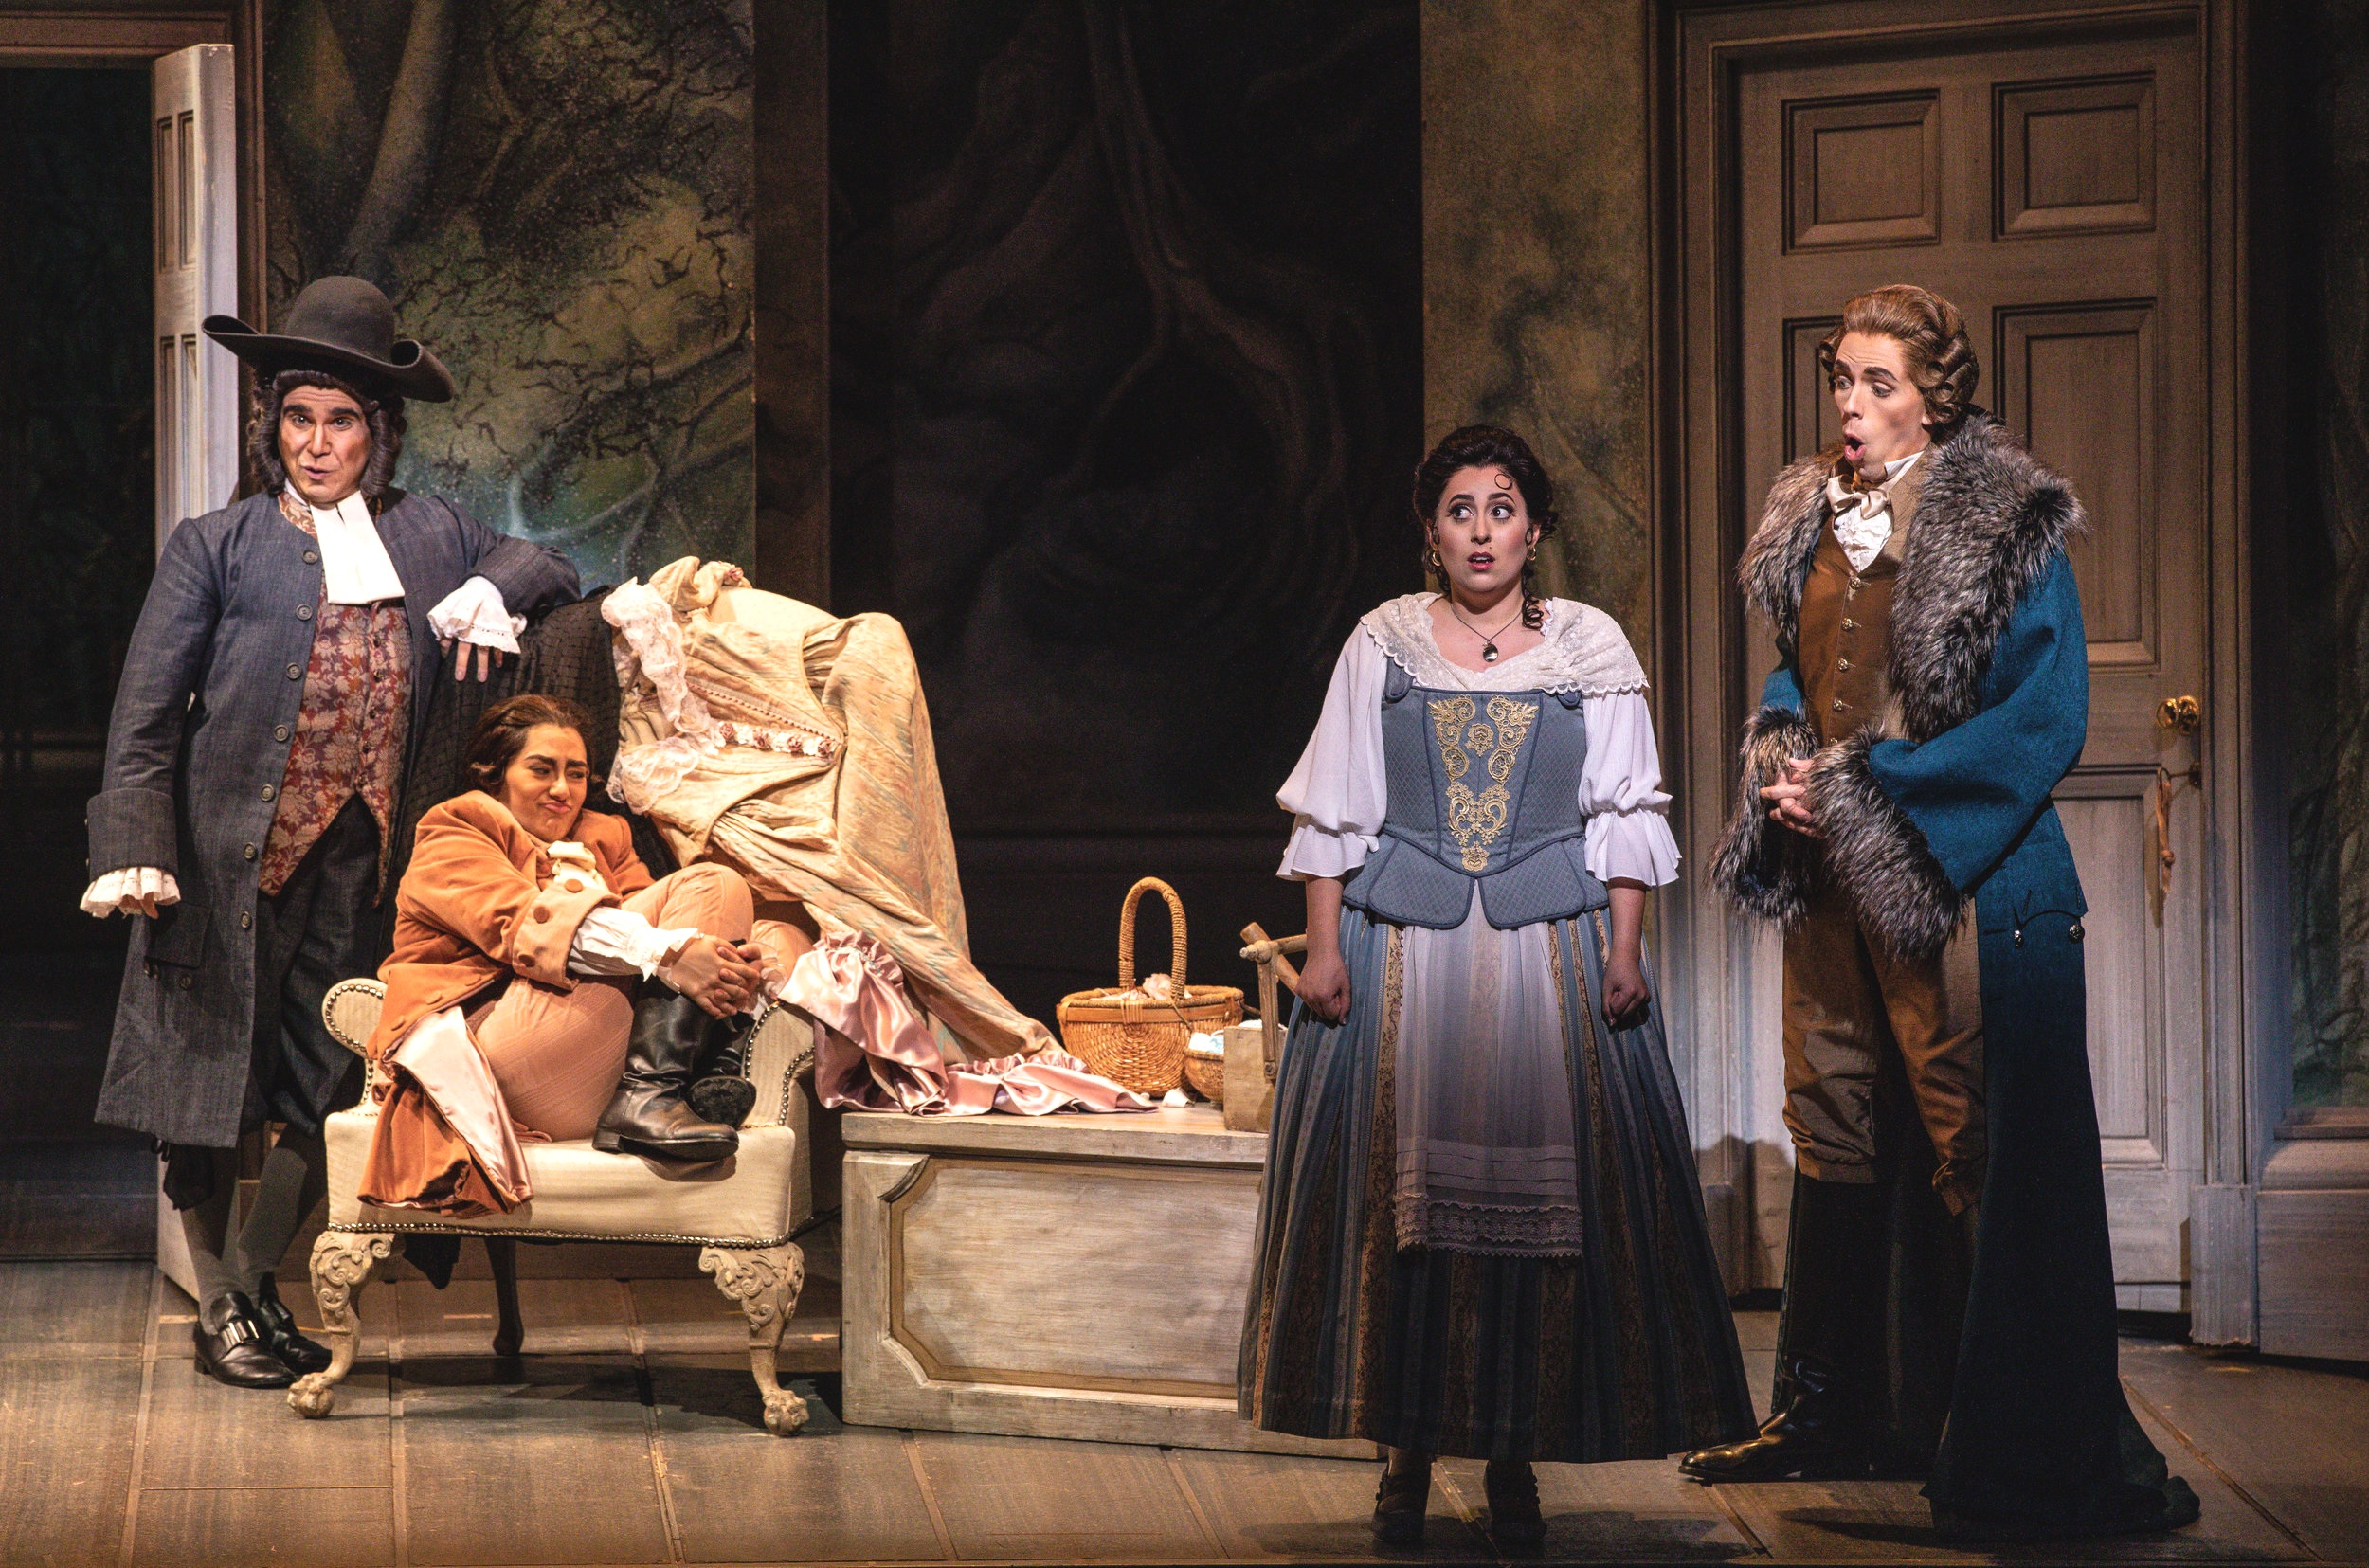 Susanna - Le nozze di Figaro  Florida Grand Opera, 2019  Photo by Daniel Azoulay